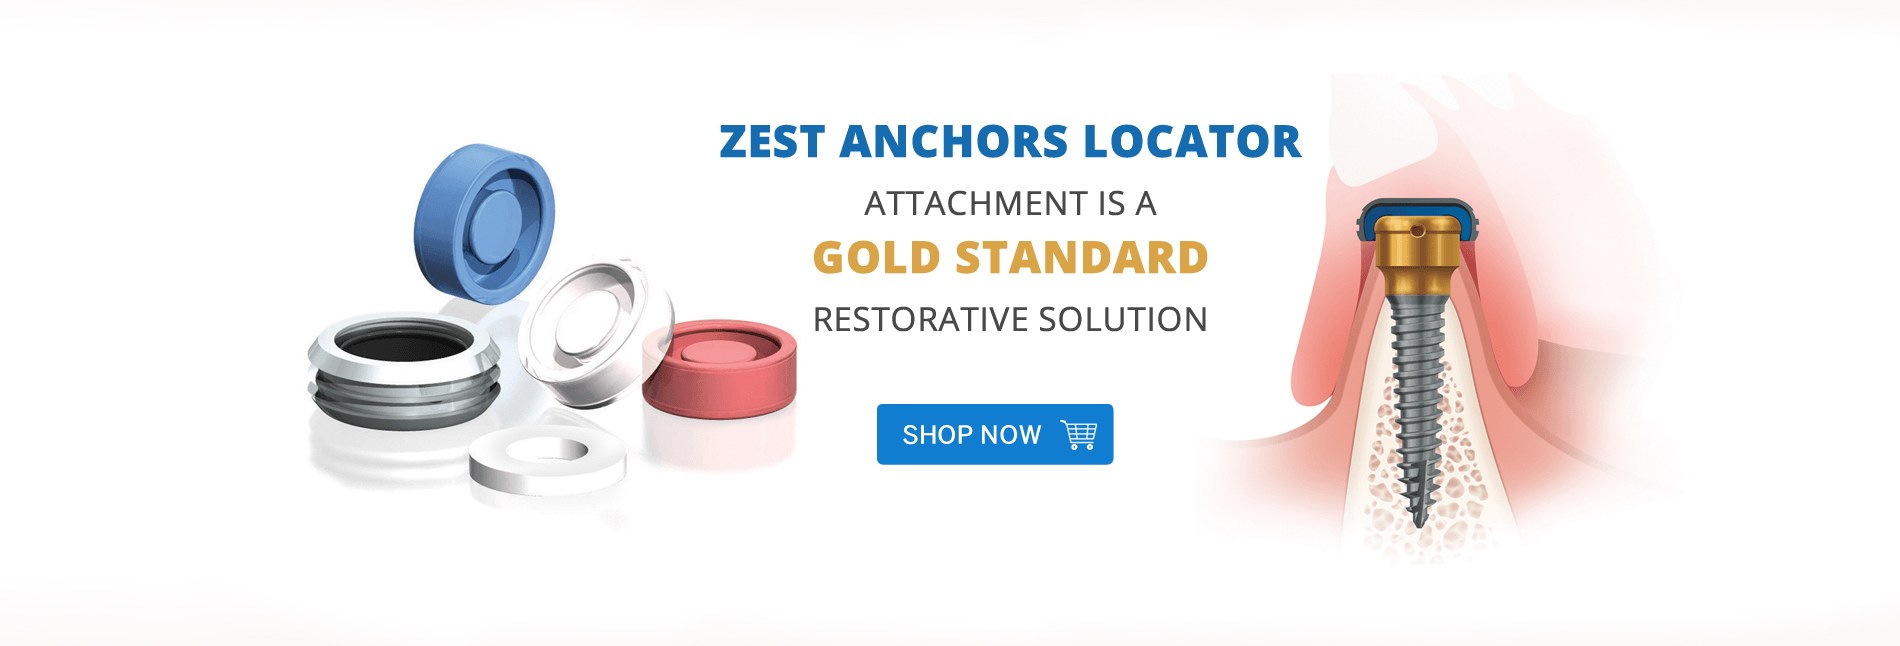 zest anchor locator